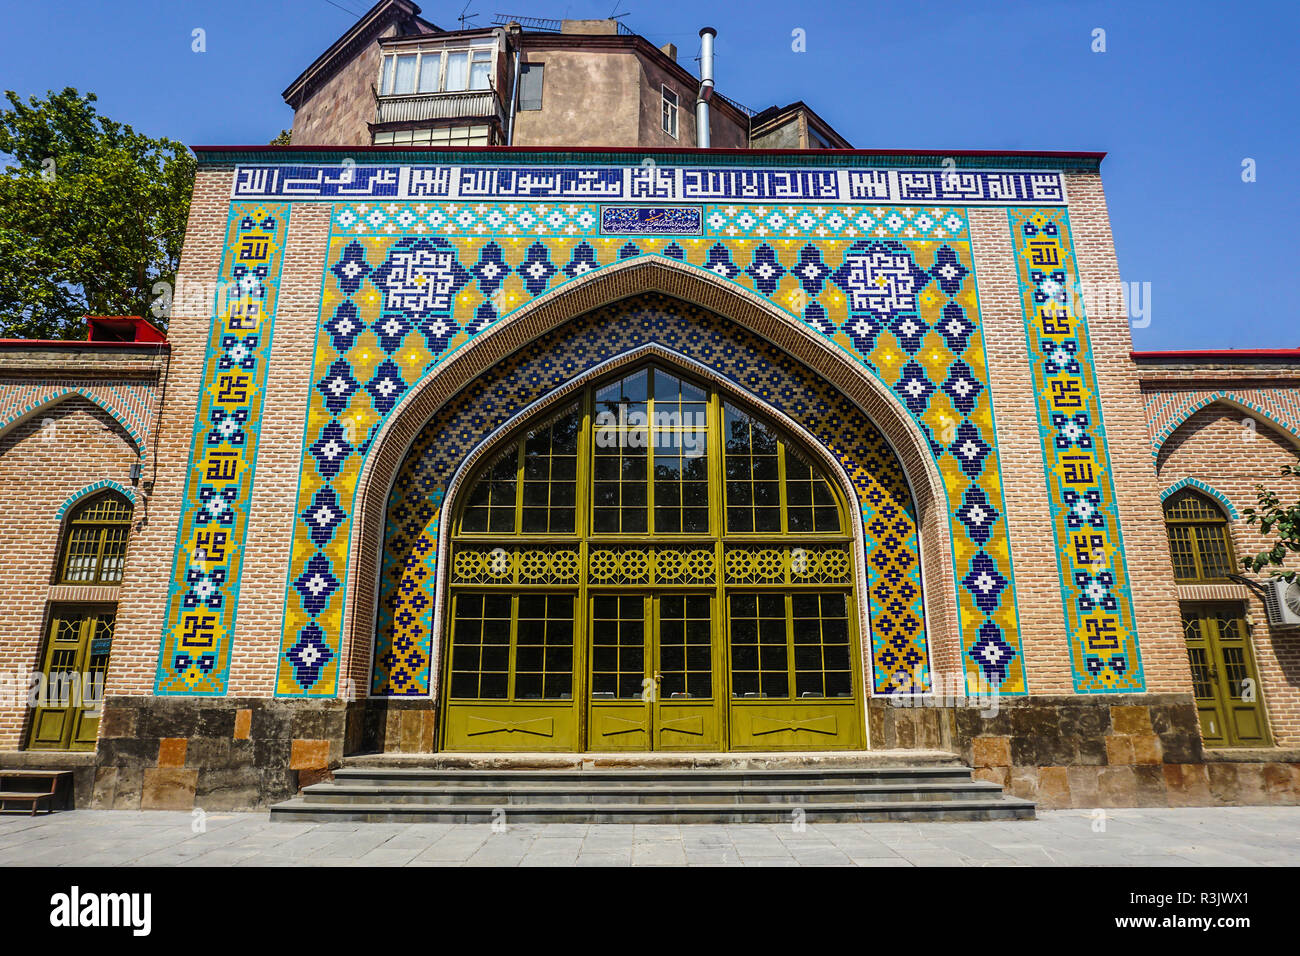 Yerevan Central Blue Mosque Madrasa Arched Bow Entry - Stock Image